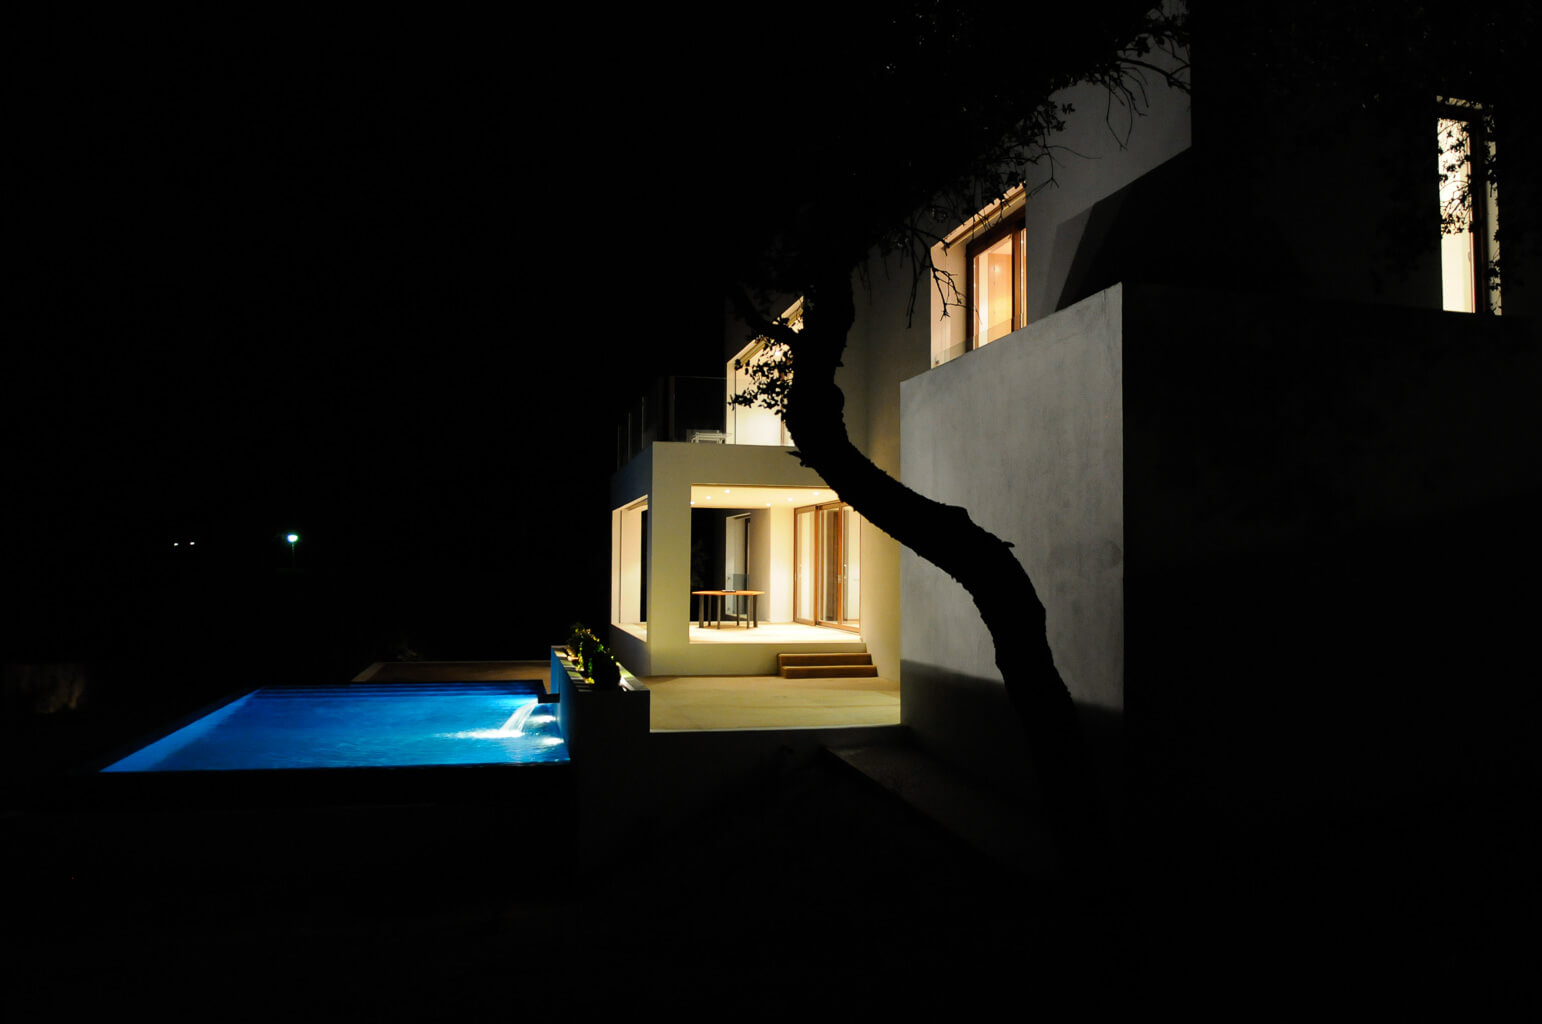 Houses design in Valdemorillo at night